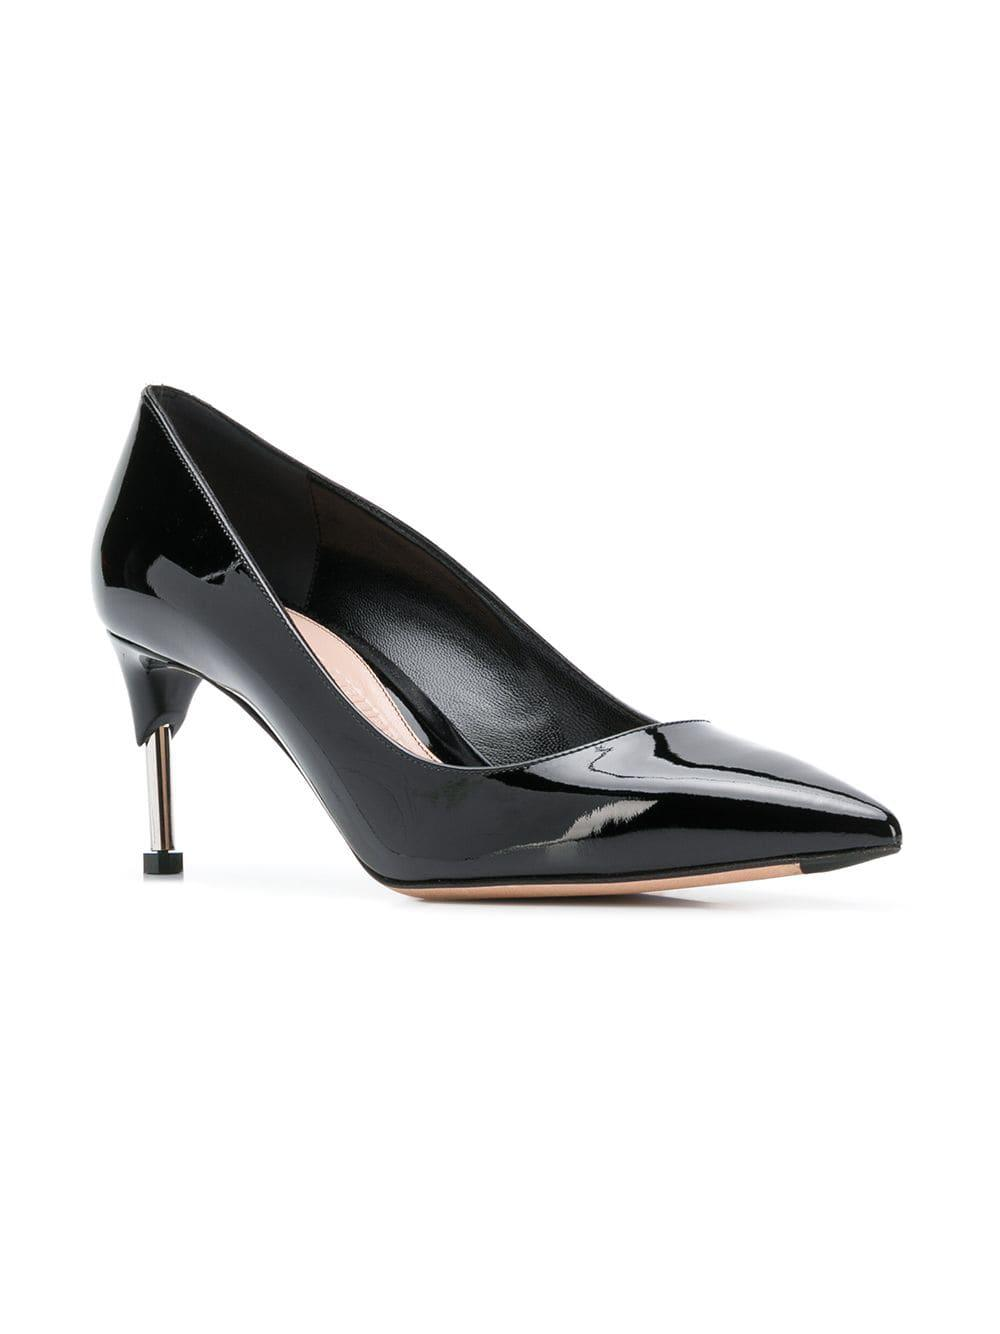 53d6b49e8b00 Lyst - Alexander McQueen Pointed Toe Pumps in Black - Save 50%